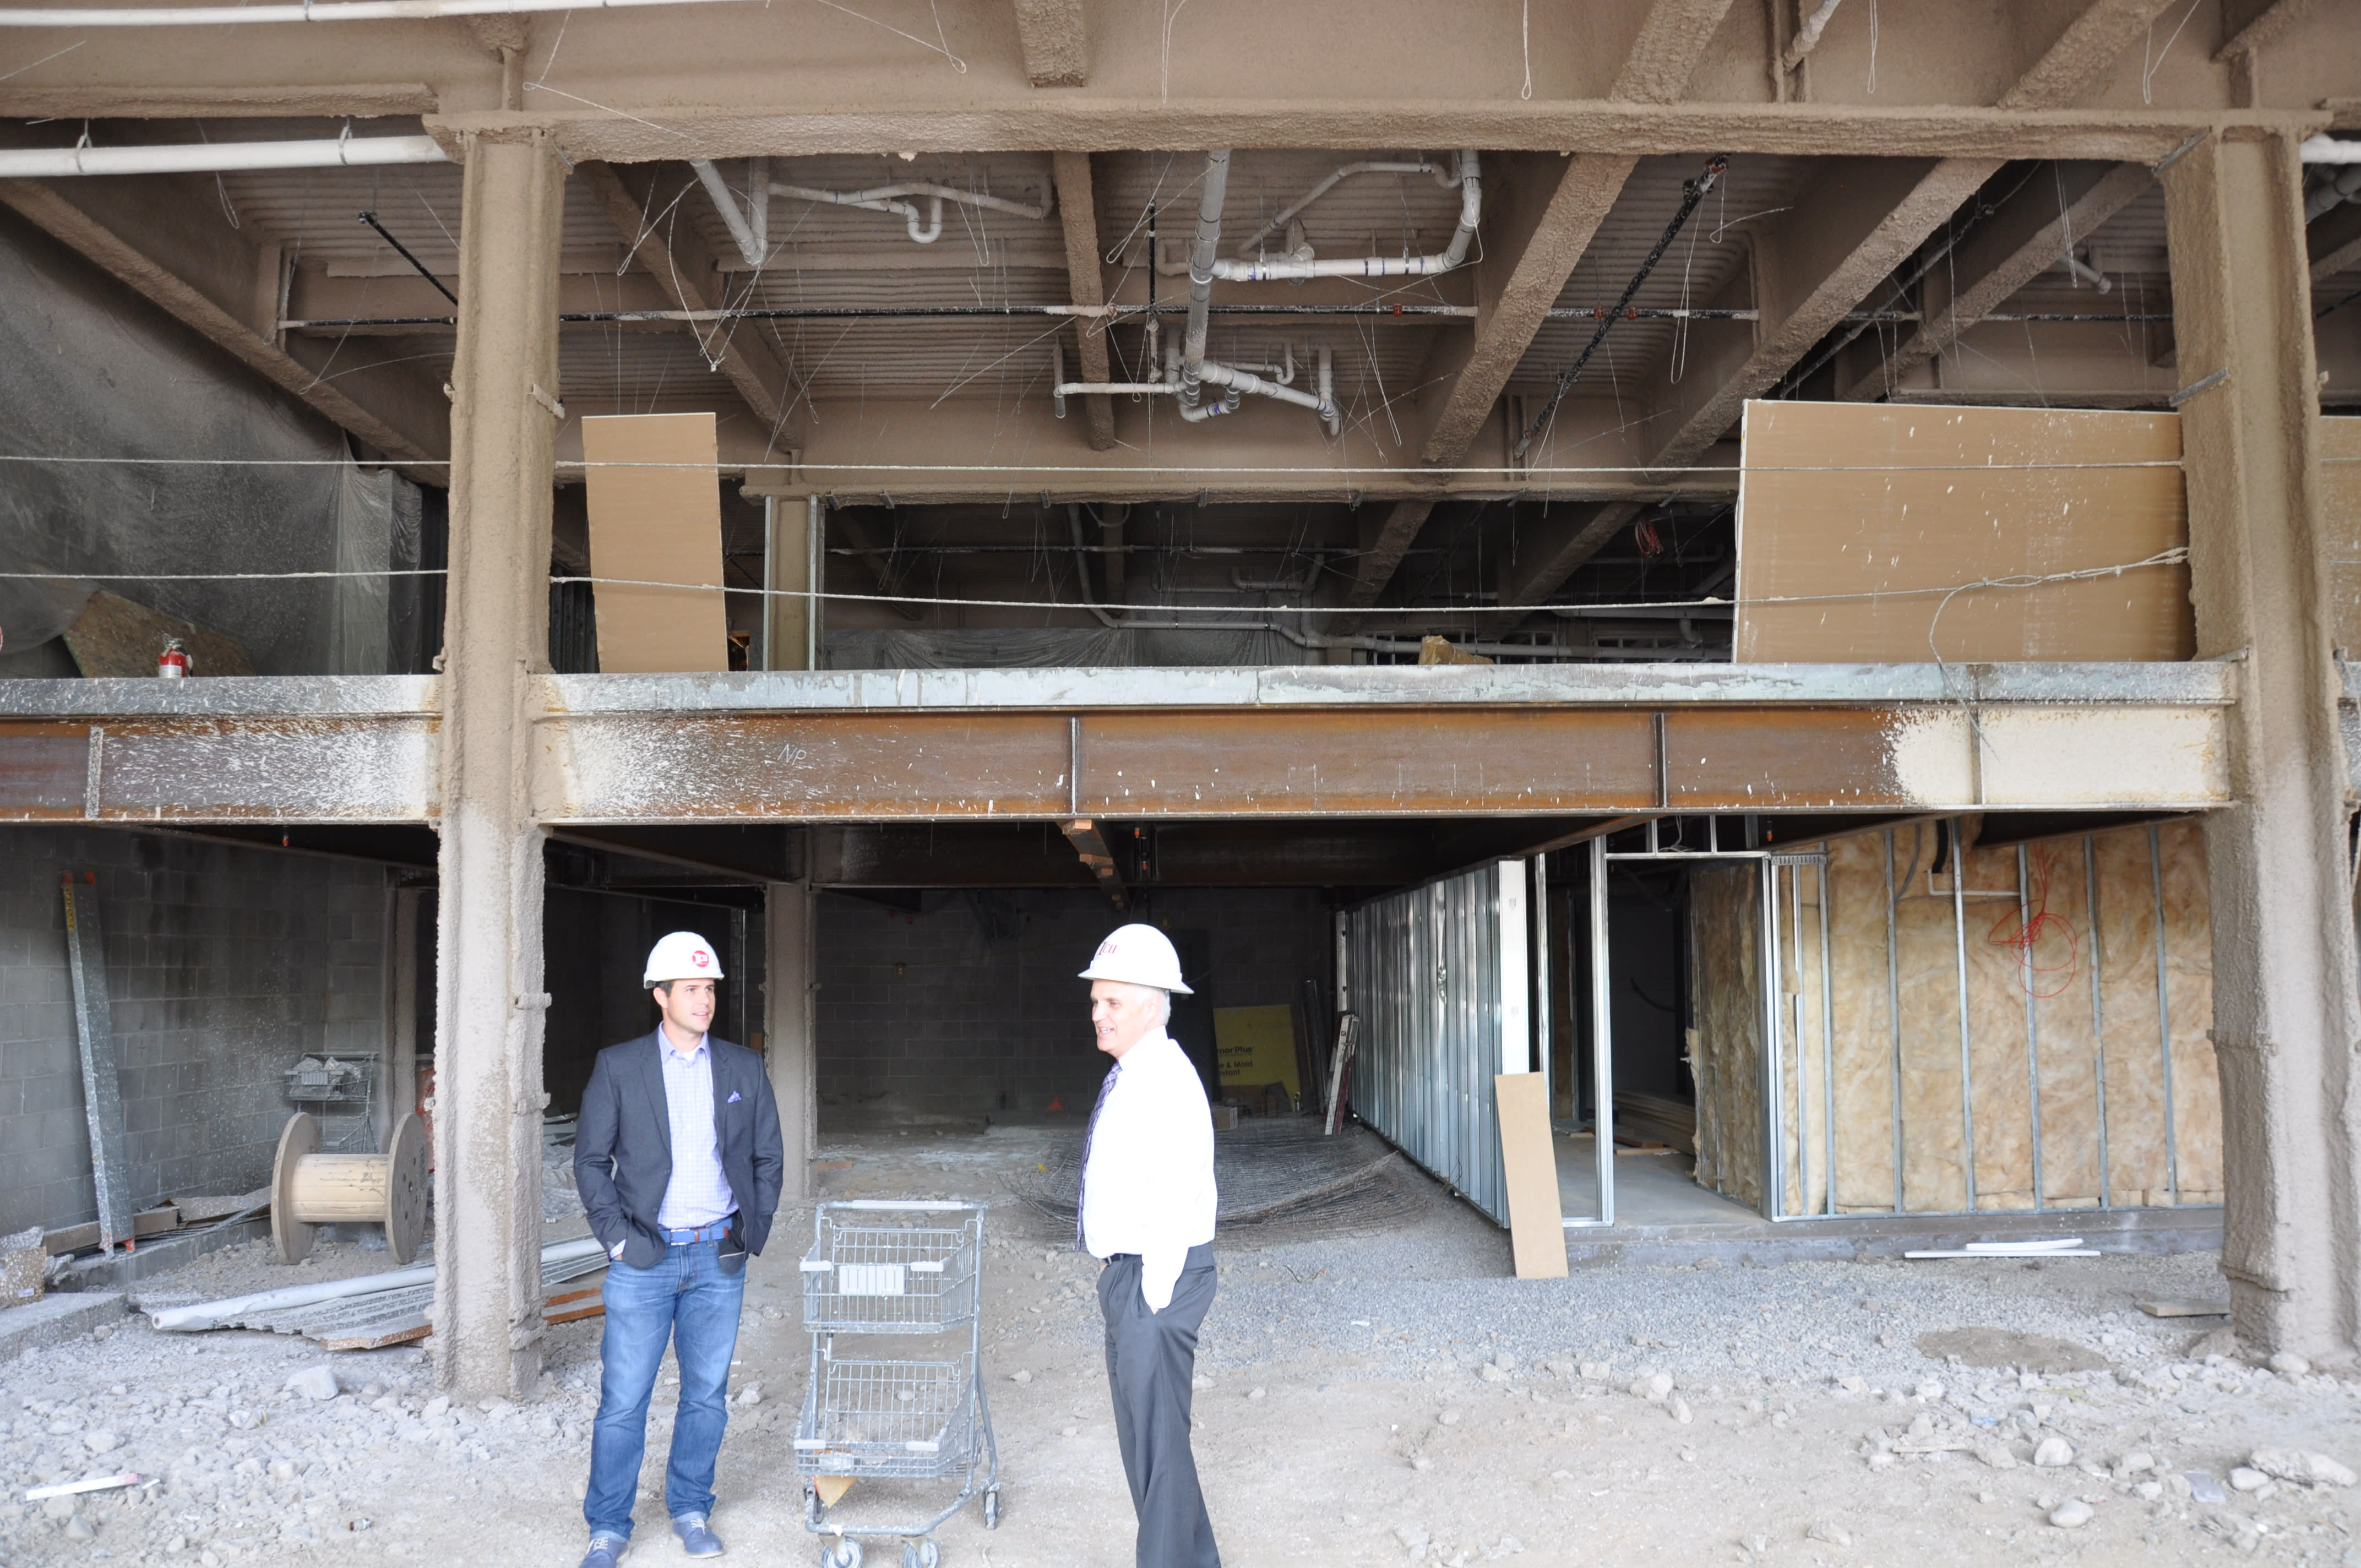 The ground floor of 63 will house a 2-story restaurant